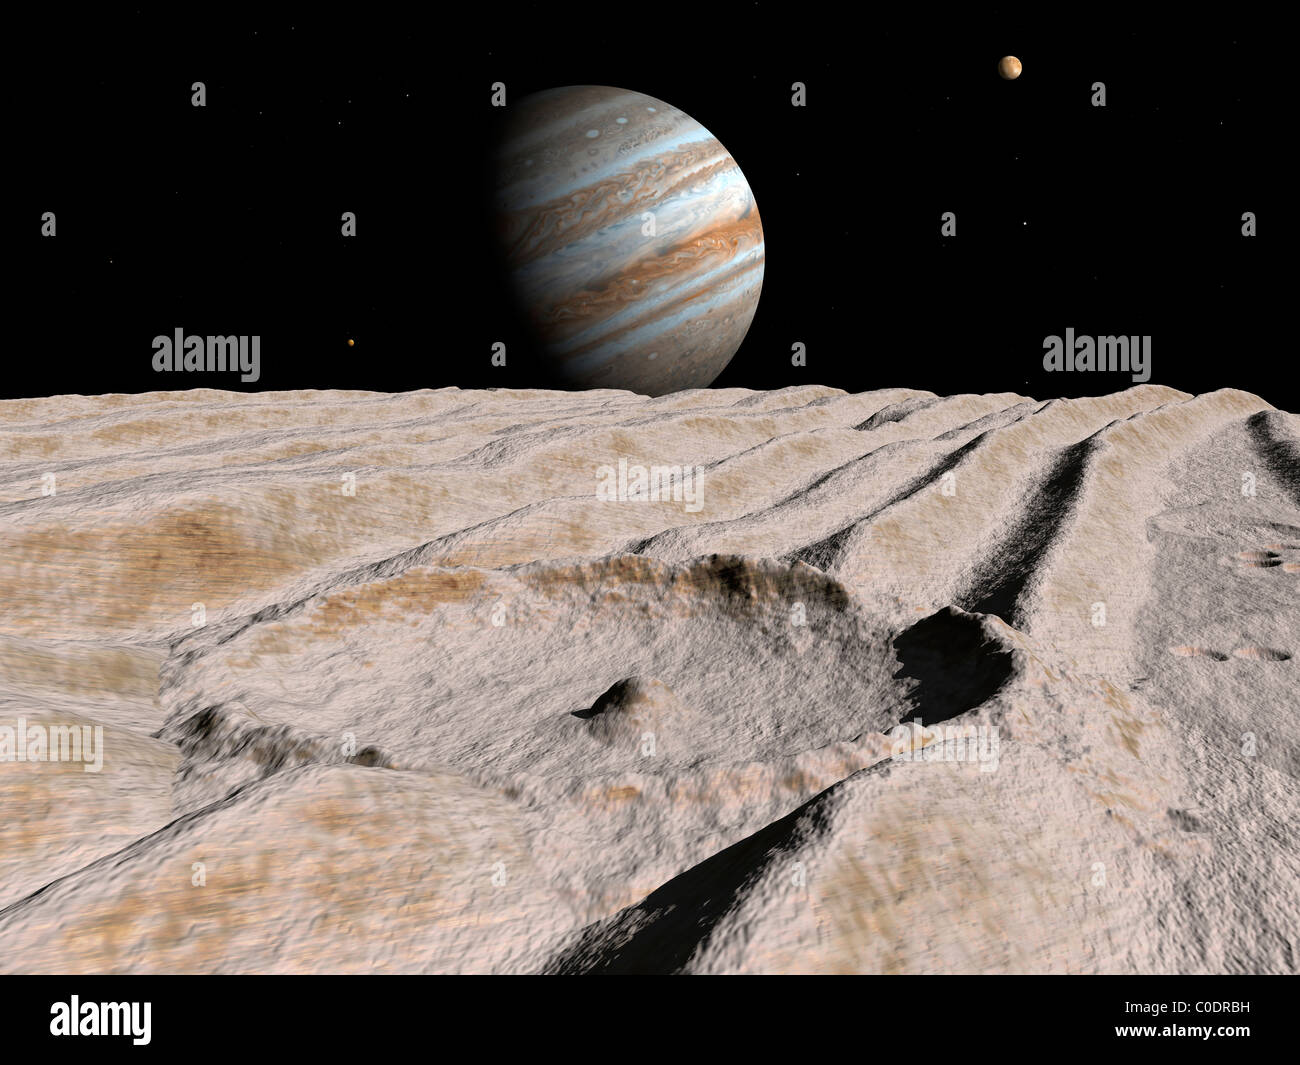 Artist's concept of an impact crater on Jupiter's moon Ganymede, with Jupiter on the horizon. - Stock Image